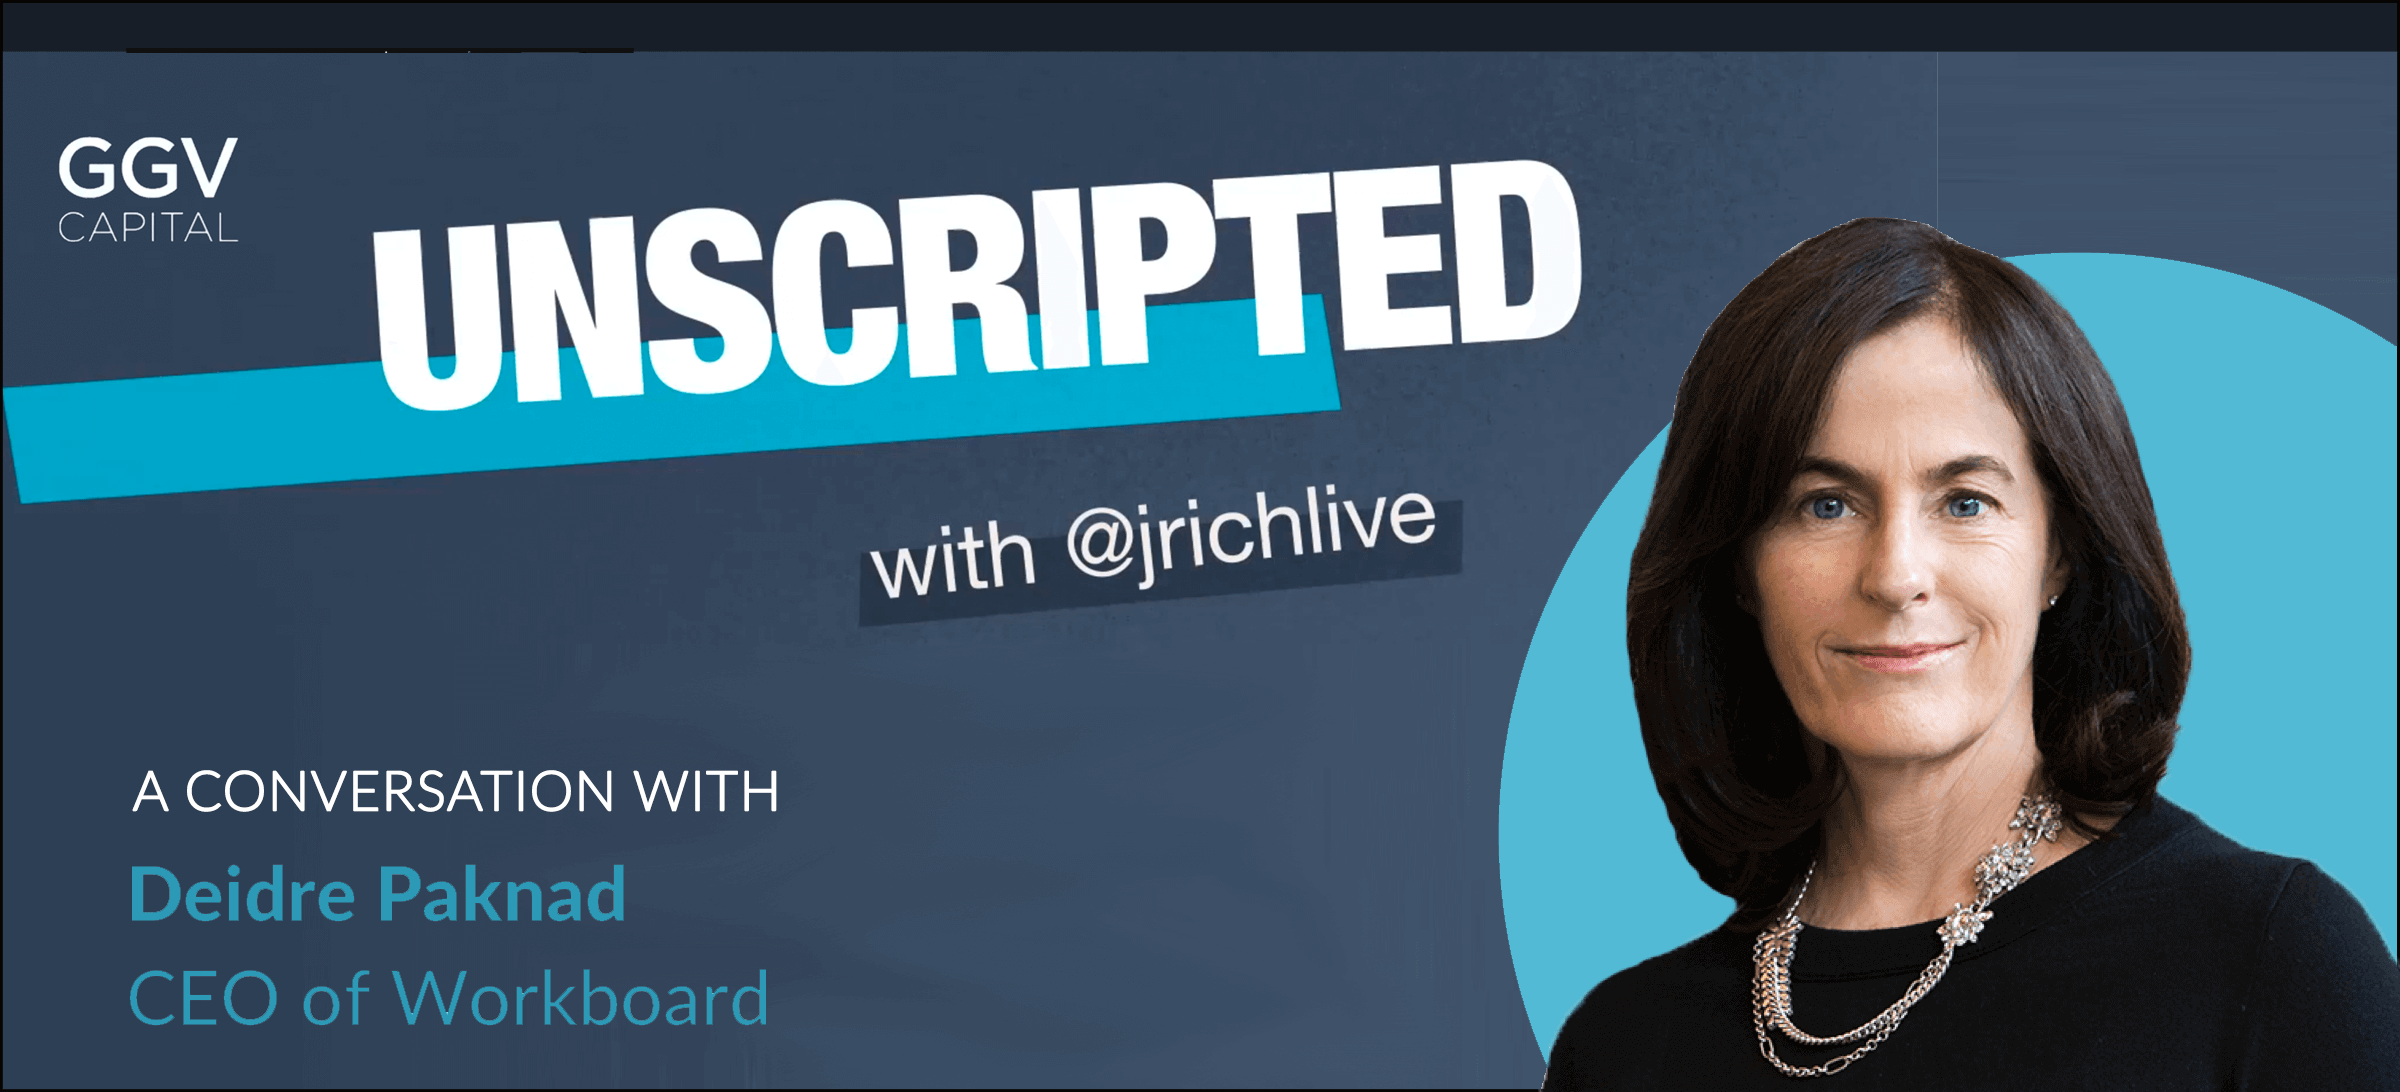 Unscripted with Jeff Richards, GGV Capital